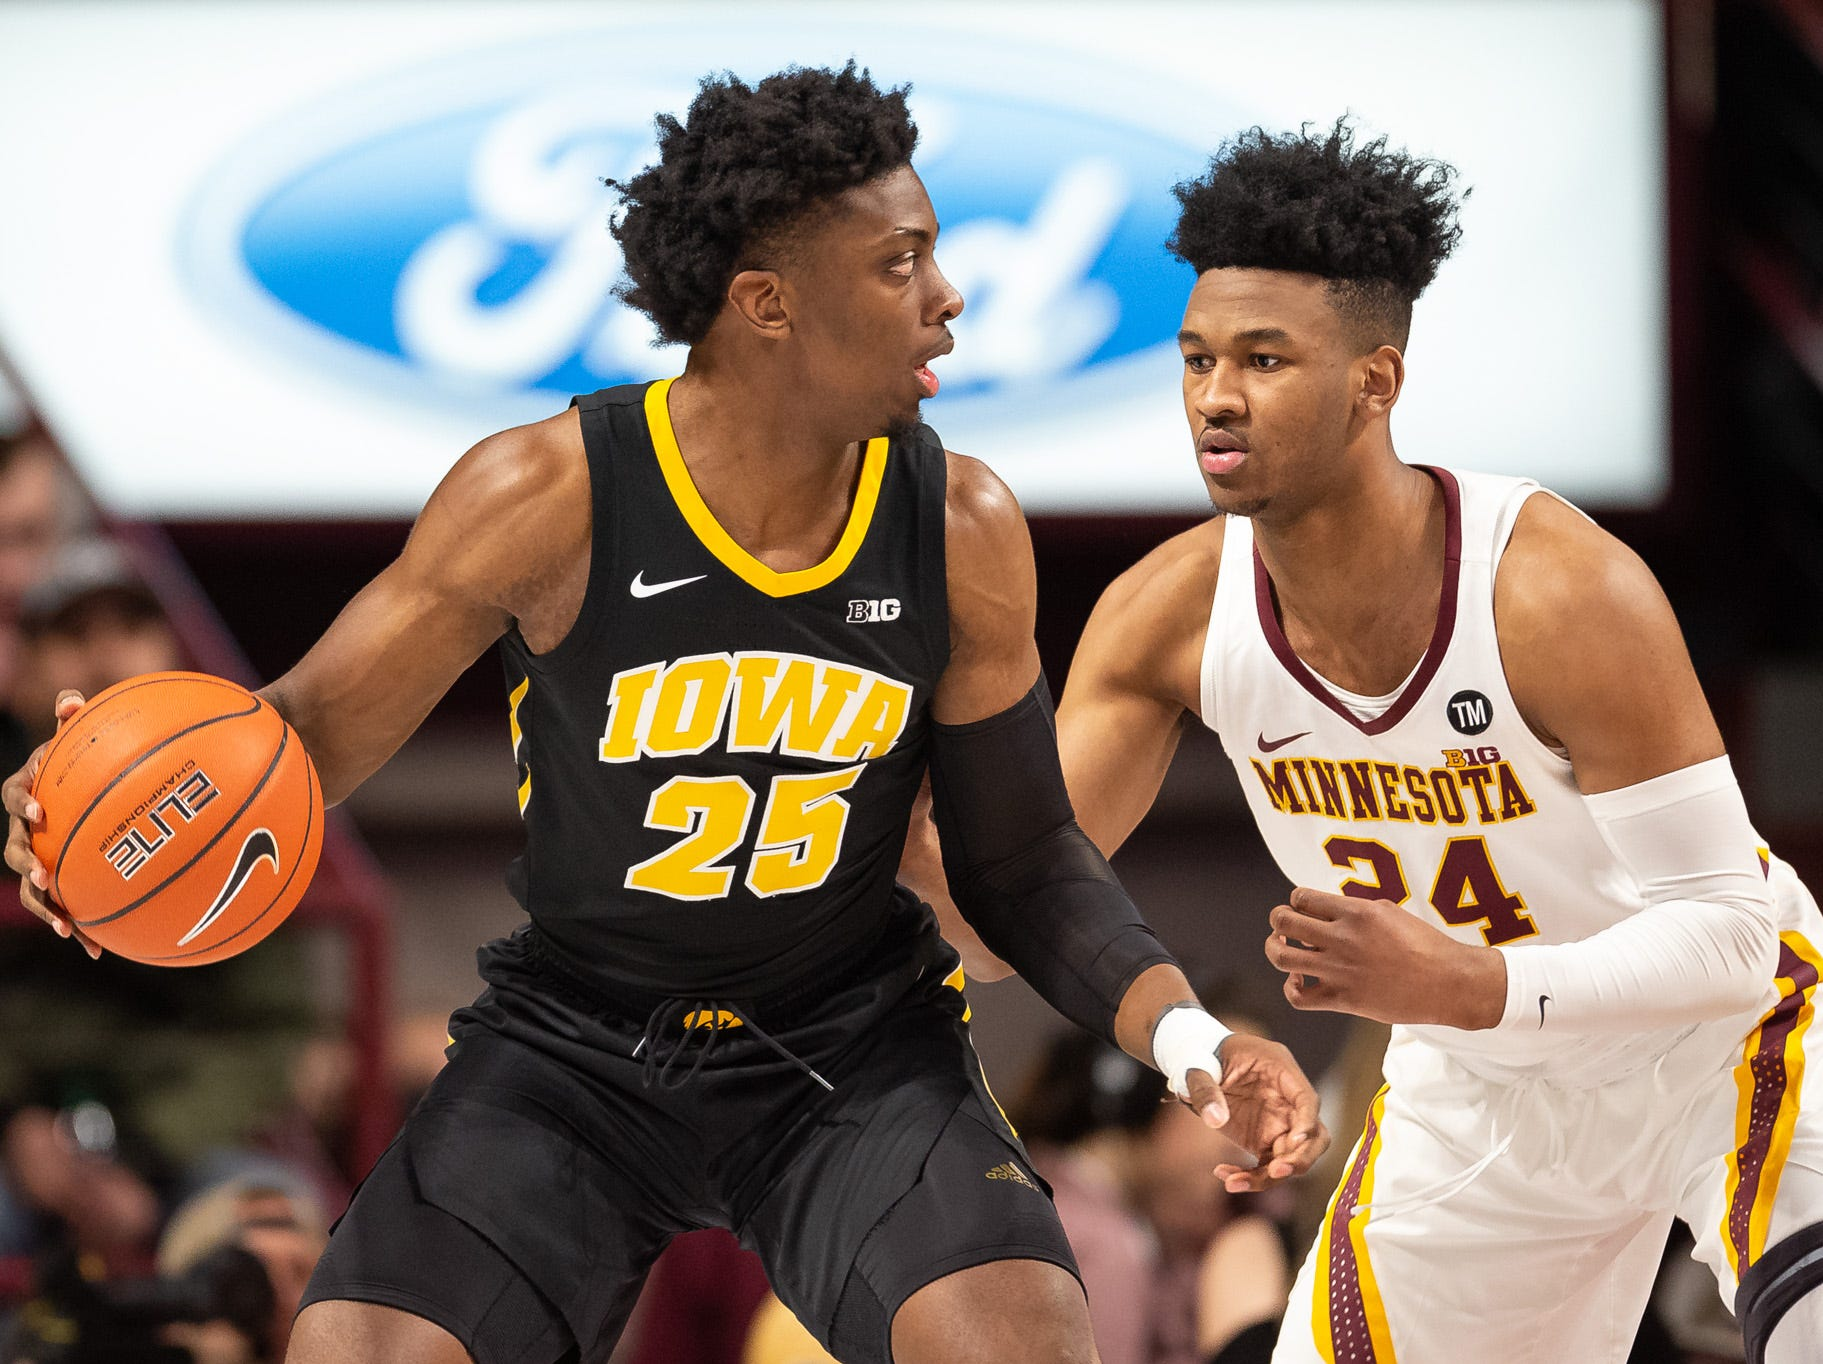 Iowa Hawkeyes forward Tyler Cook (25) dribbles the ball as Minnesota Gophers forward Eric Curry (24) defends during the first half at Williams Arena.